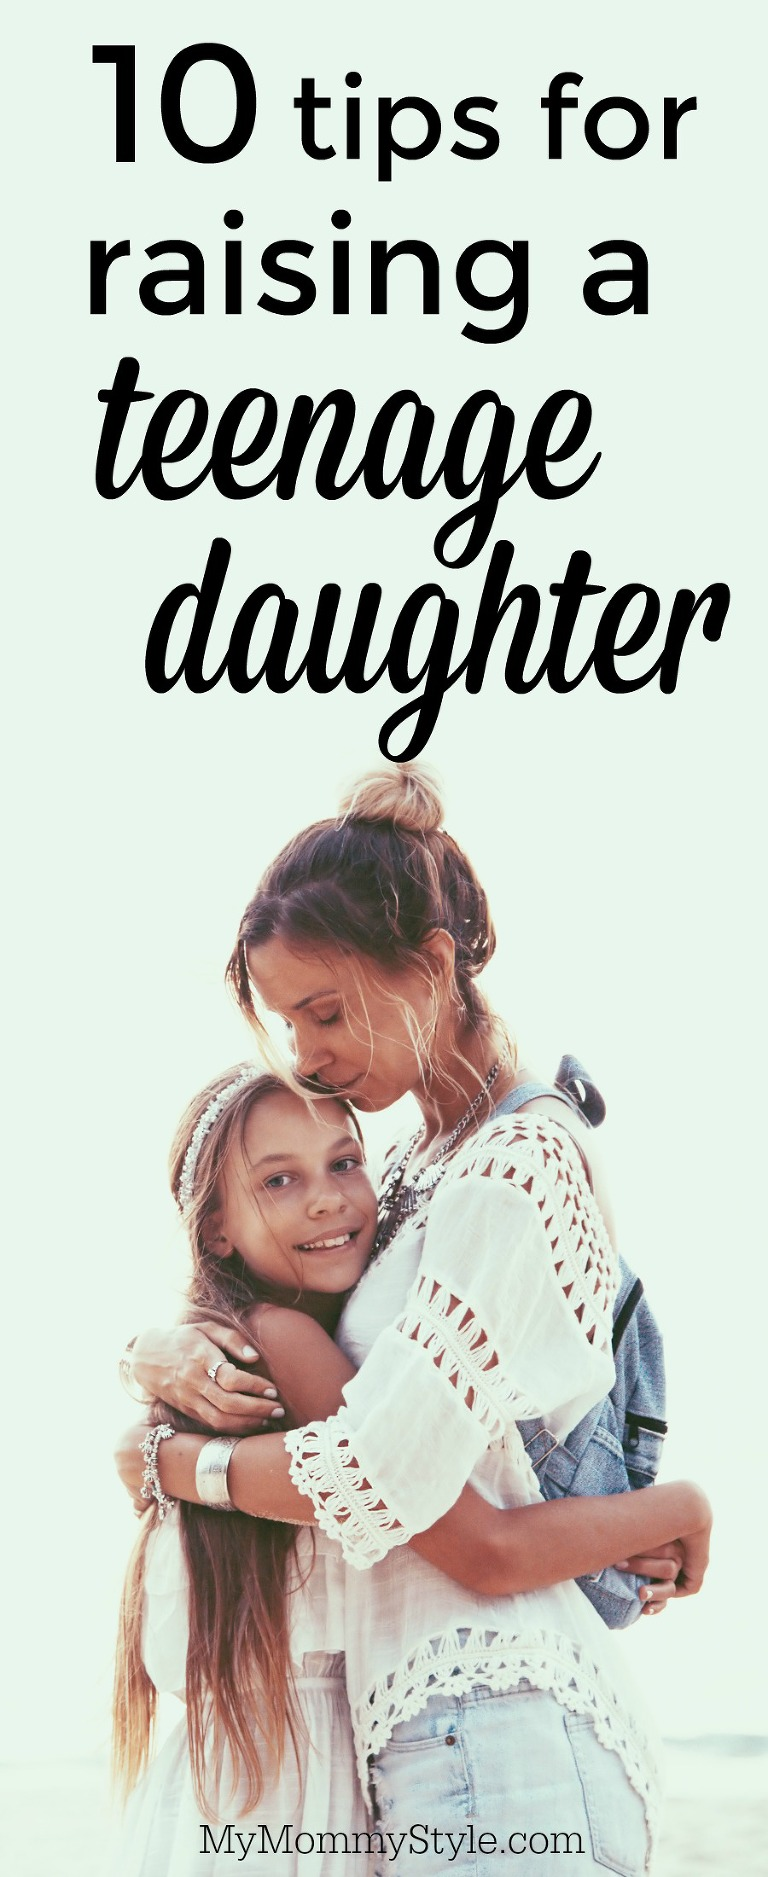 10-tips-for-raising-a-teenage-daughter